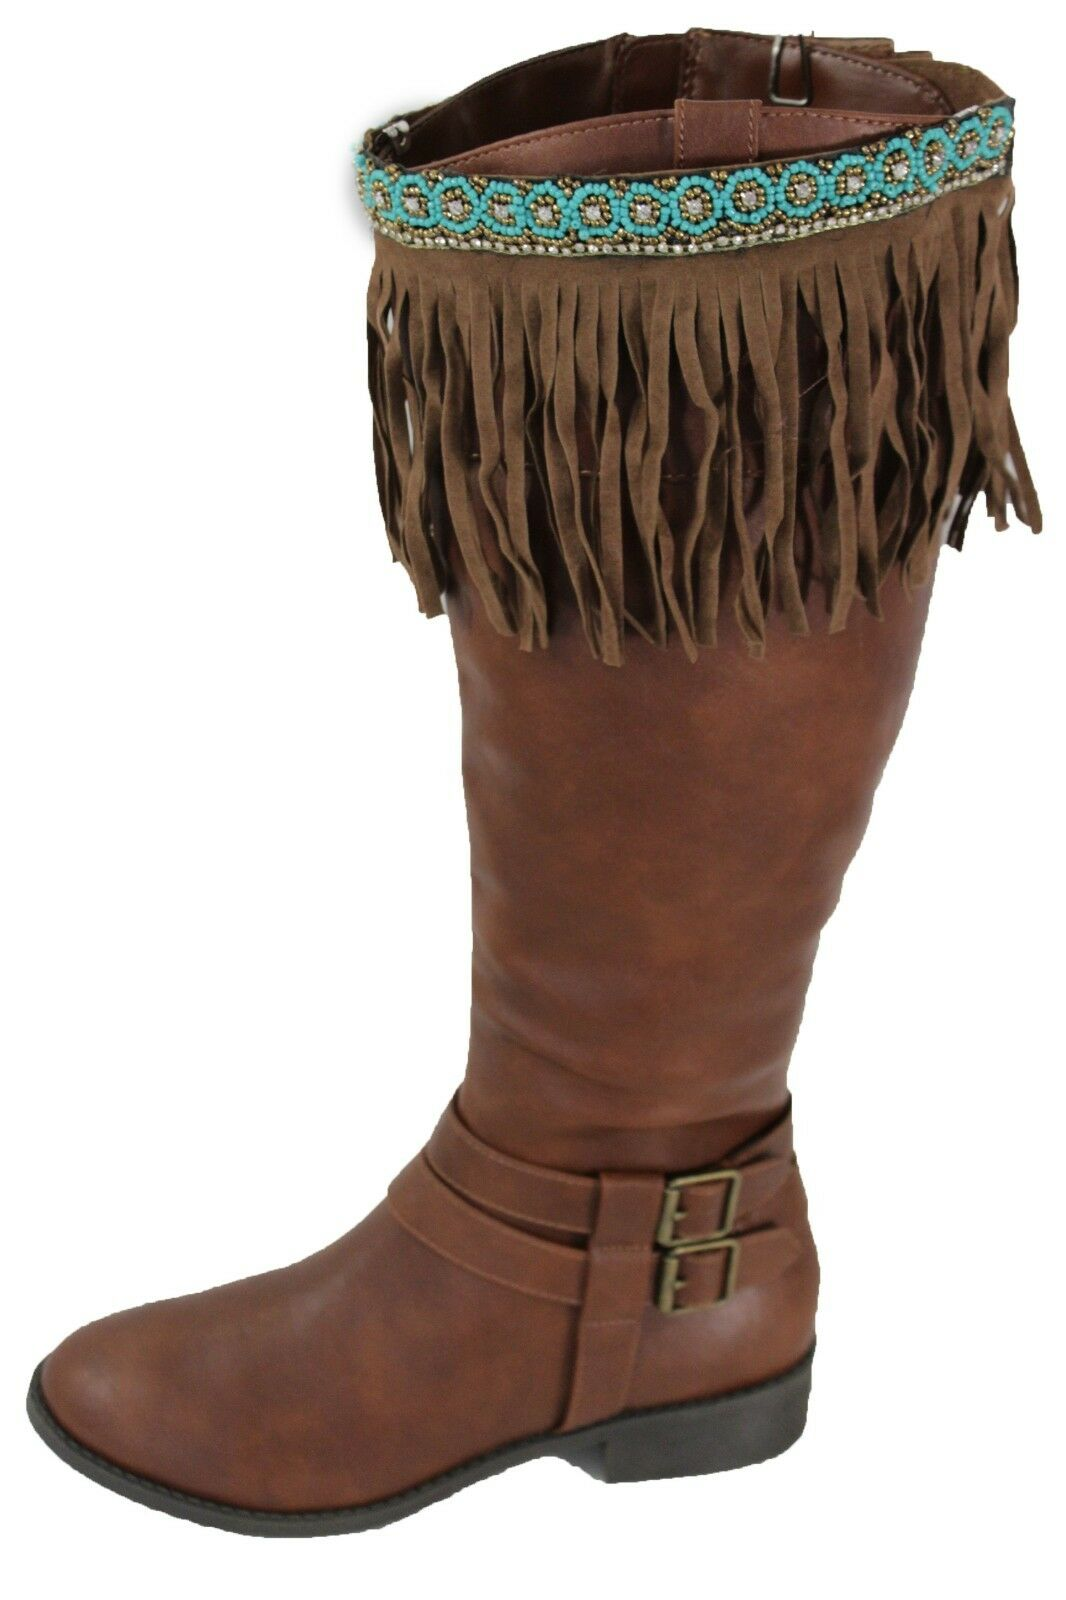 Western Women Boot Toppers Pair Brown Long Faux Leather Fringes Turquoise Beads